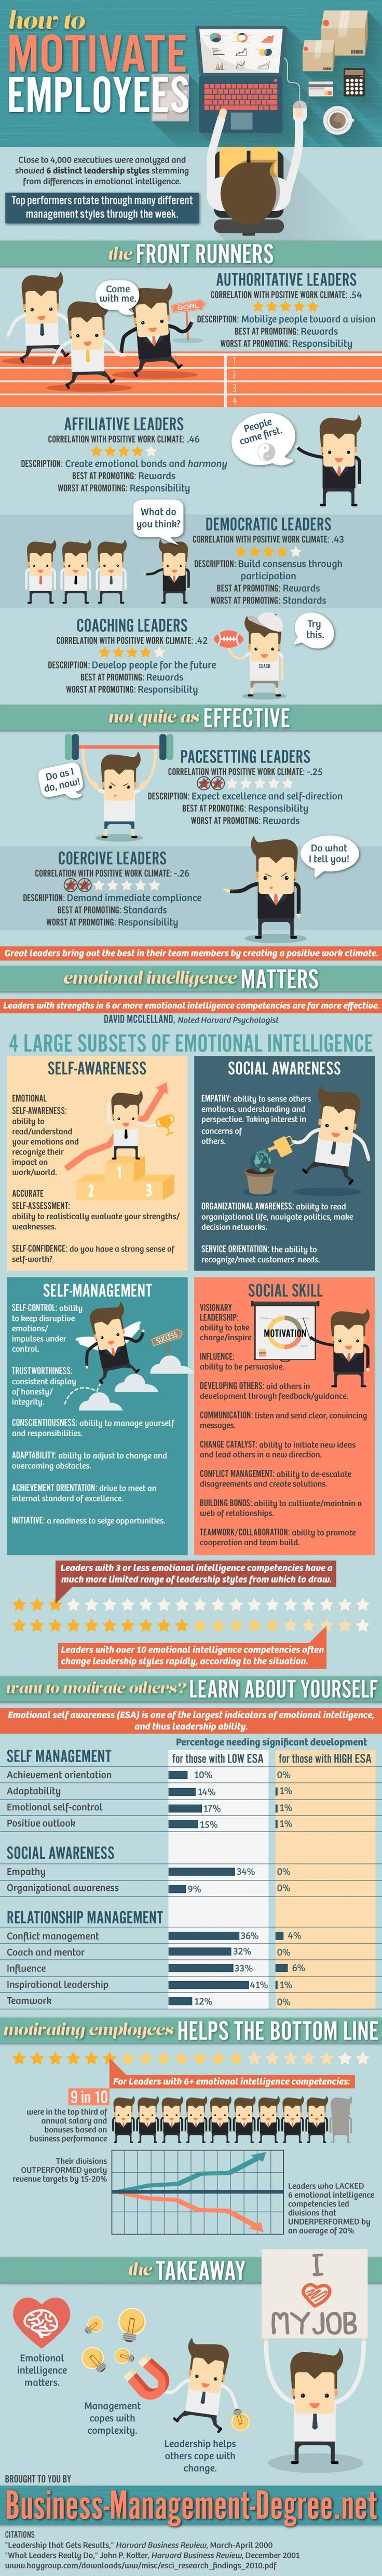 How to Become an Inspirational Leader (Infographic) #ideatevision www.ideatevision.com